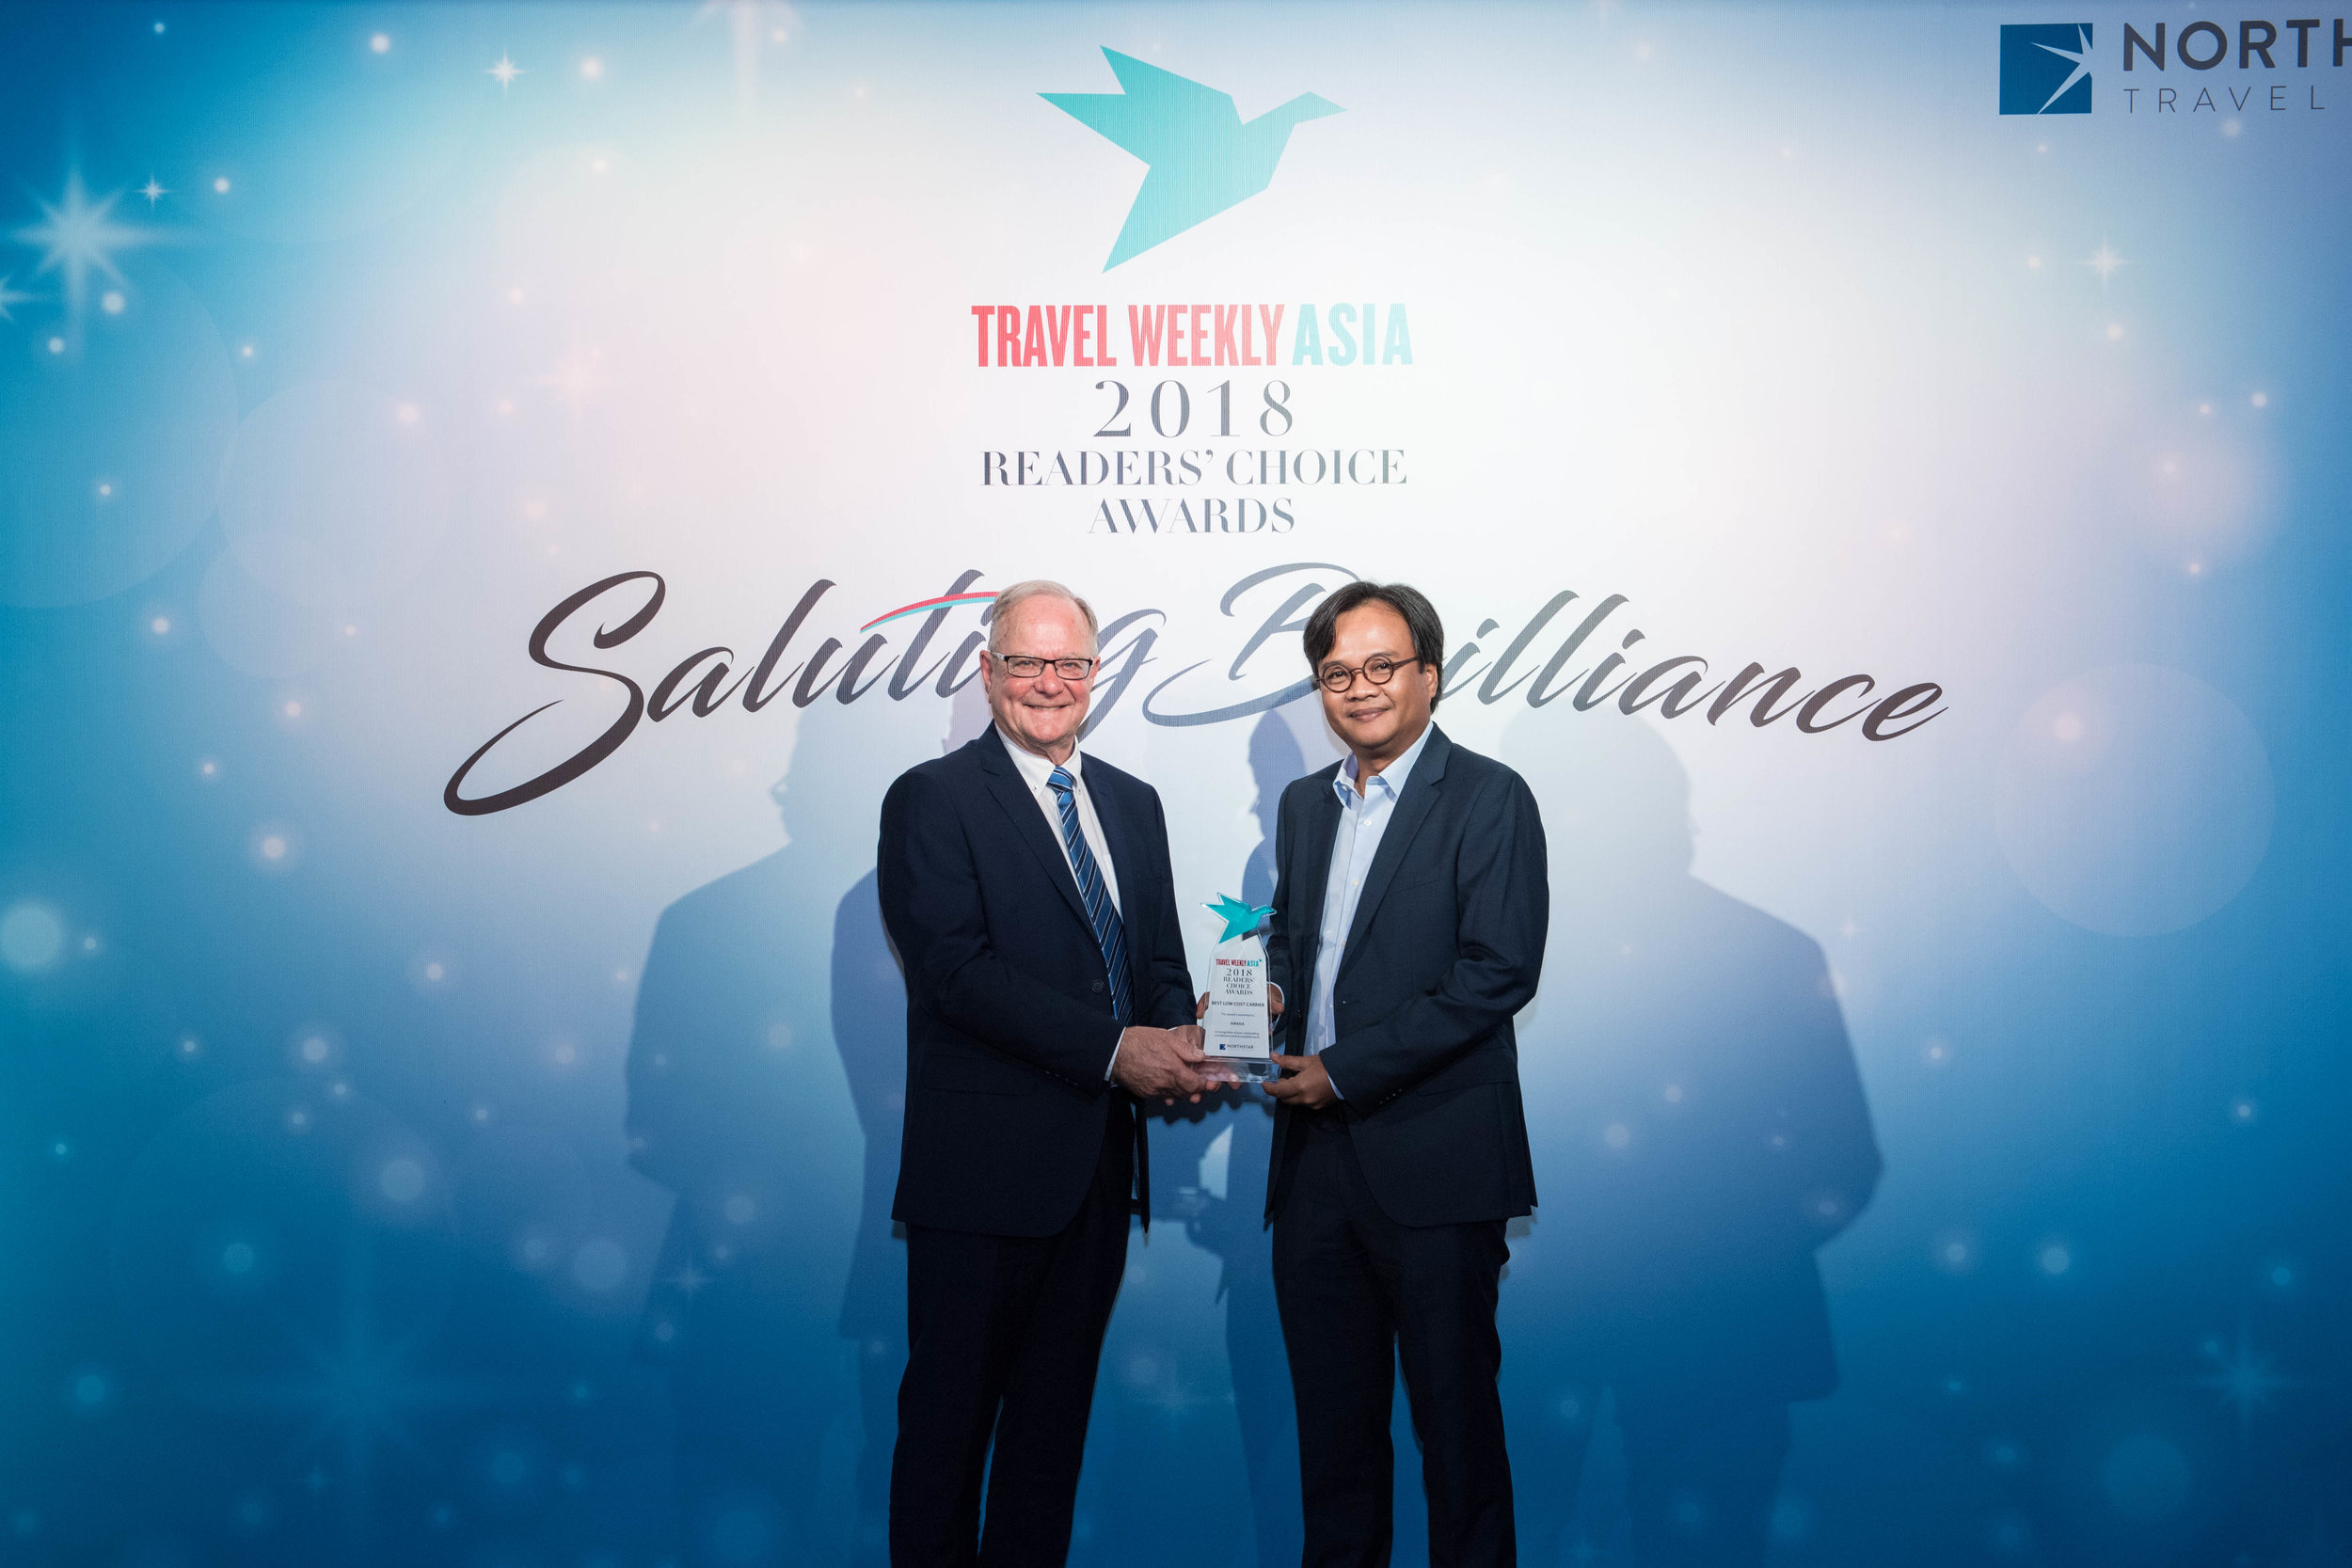 Ian Jarrett, Editor at Large, Travel Weekly Asia (L) presents the award to AirAsia Indonesia CEO Dendy Kurniawan at the ceremony last evening.